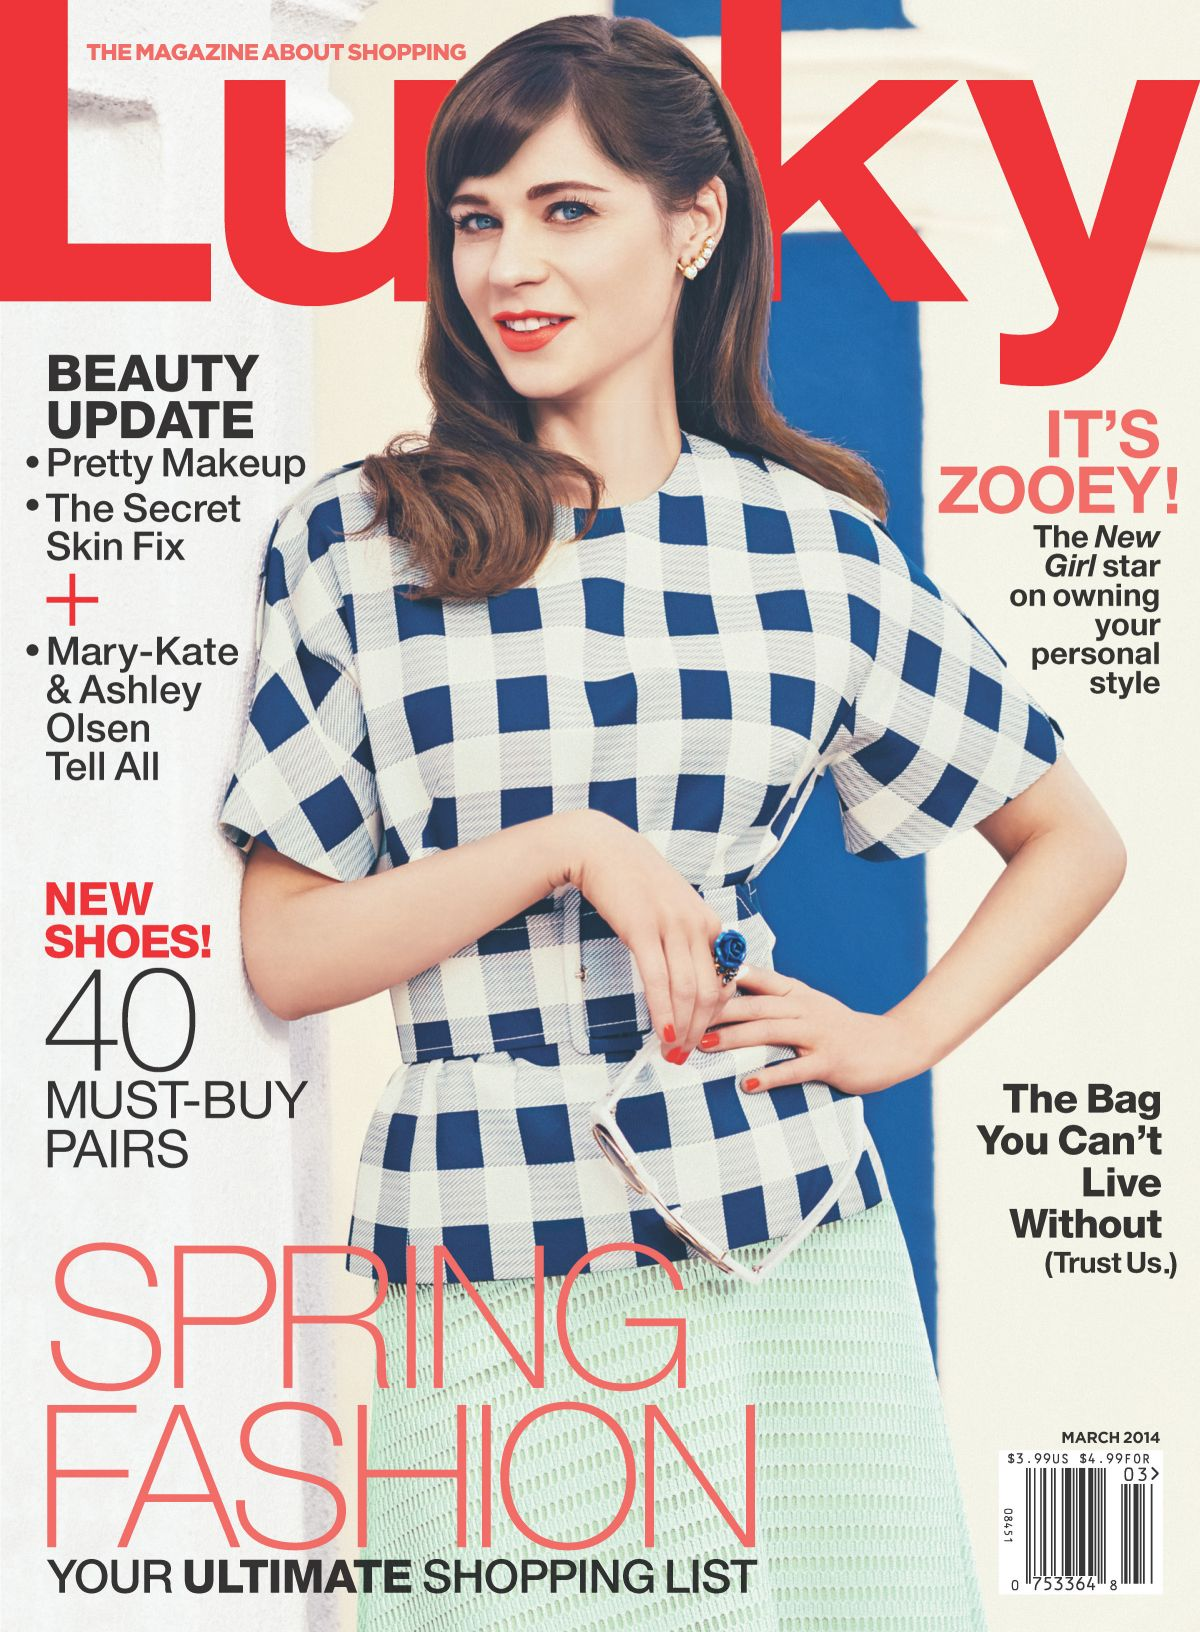 Lucky Magazine May 11: ZOOEY DESCHANEL On The Cover Of Lucky Magazine, March 2014